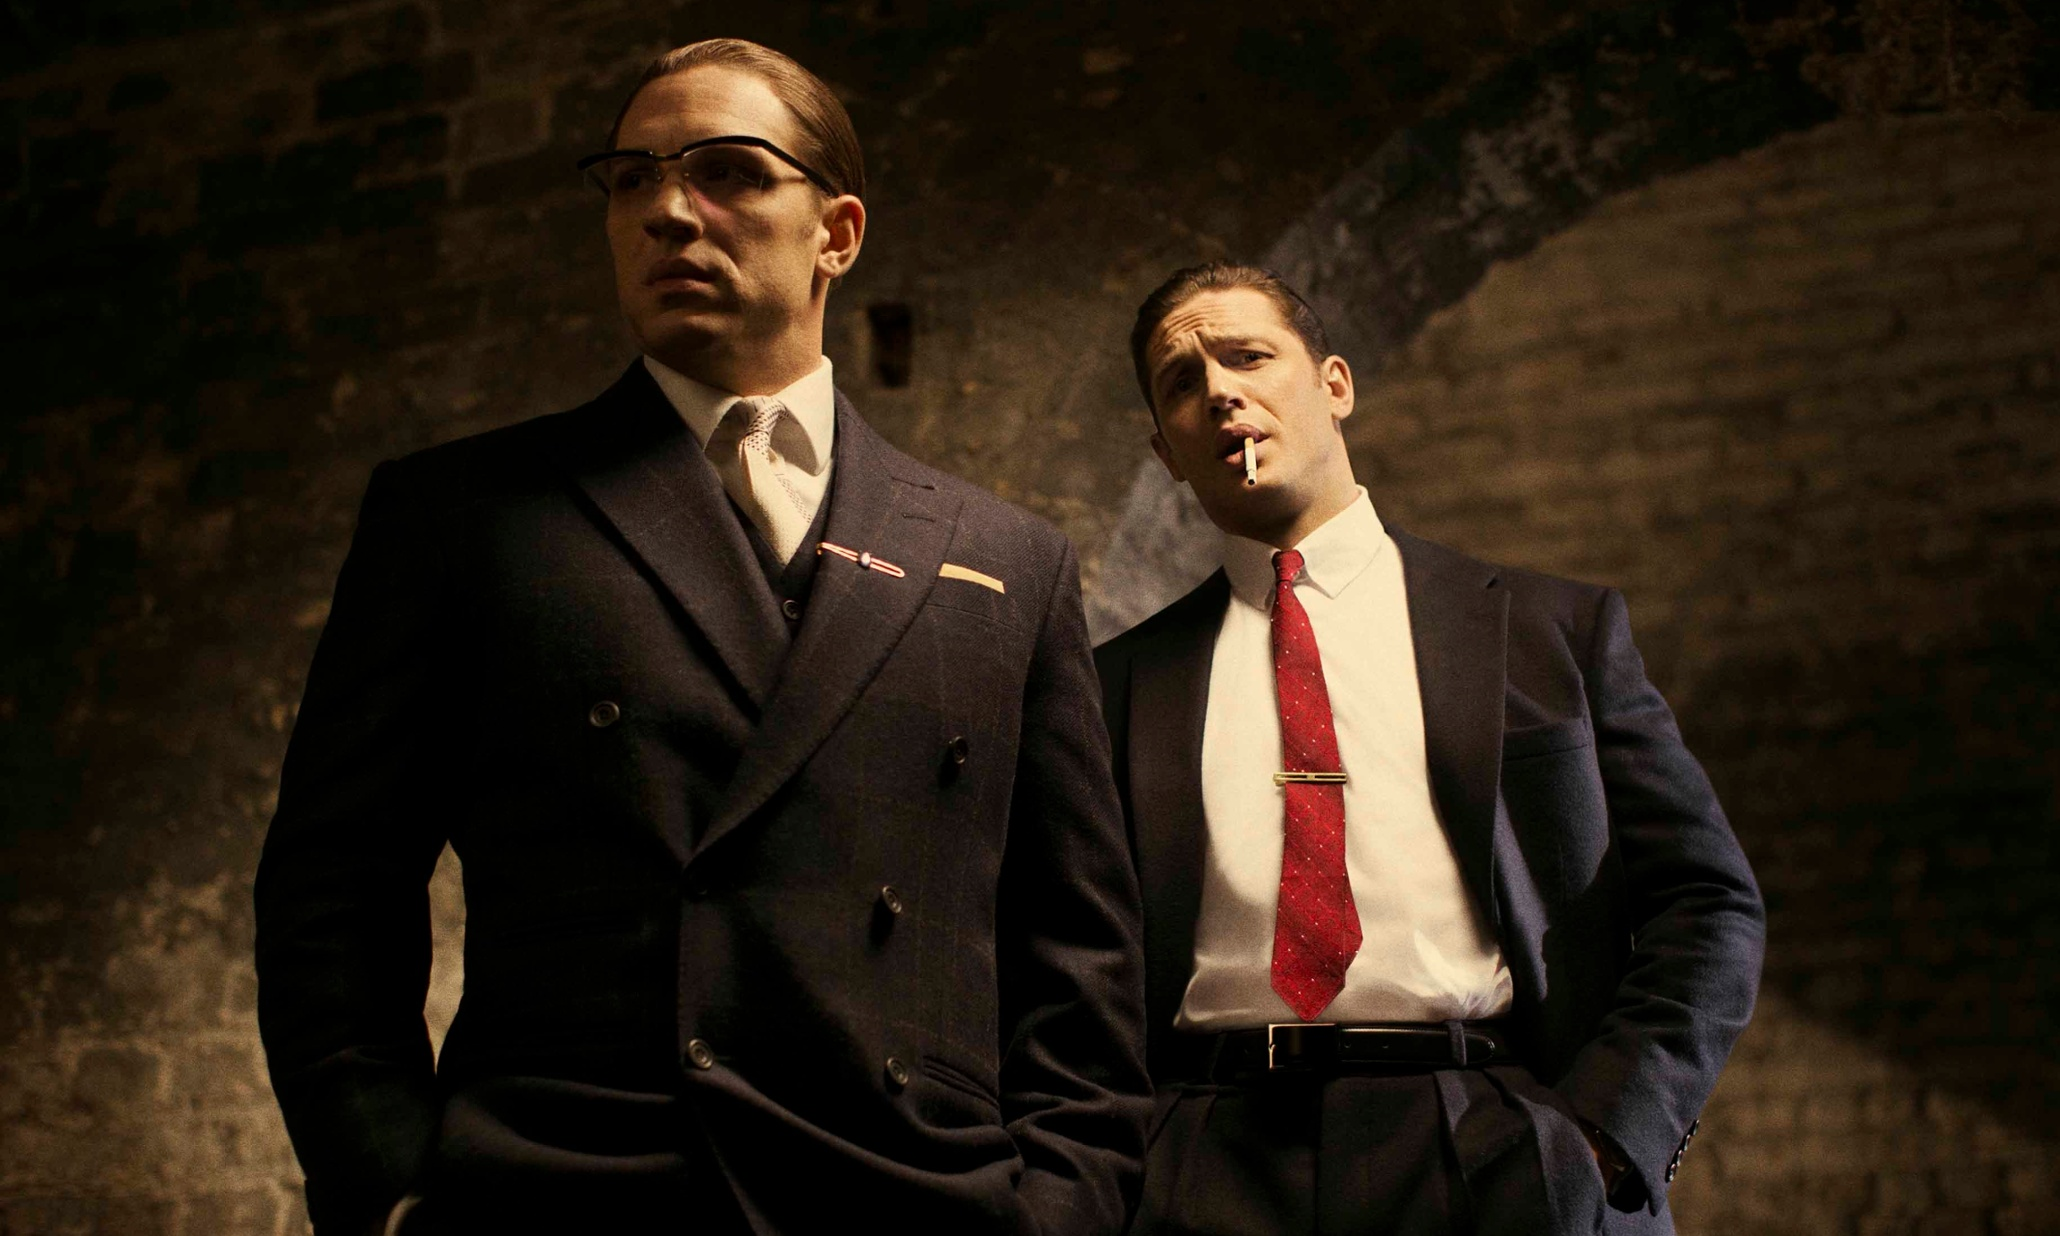 Tom Hardy in his latest roles as Ronnie (left) and Reggie Kray in the film, Legend.